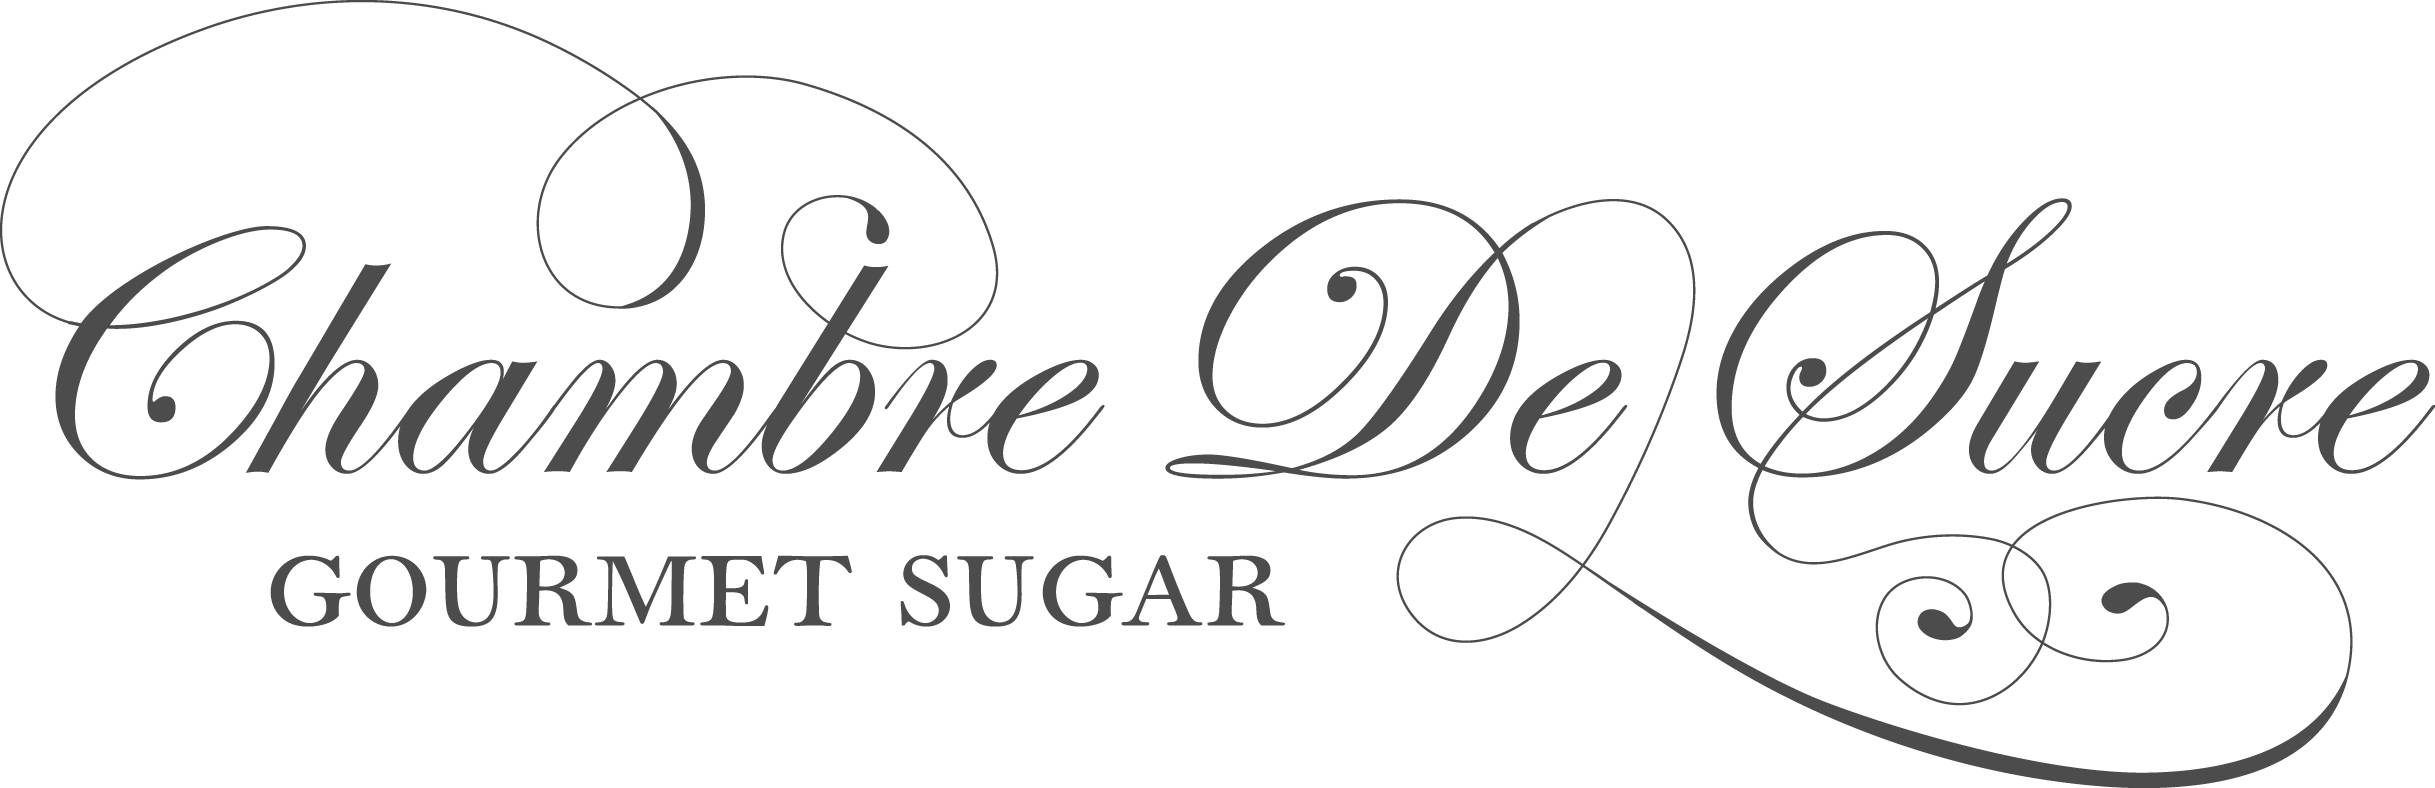 Studiowed inspired bride tickets atlanta eventbrite for Chambre de sucre gourmet artisanal sugars